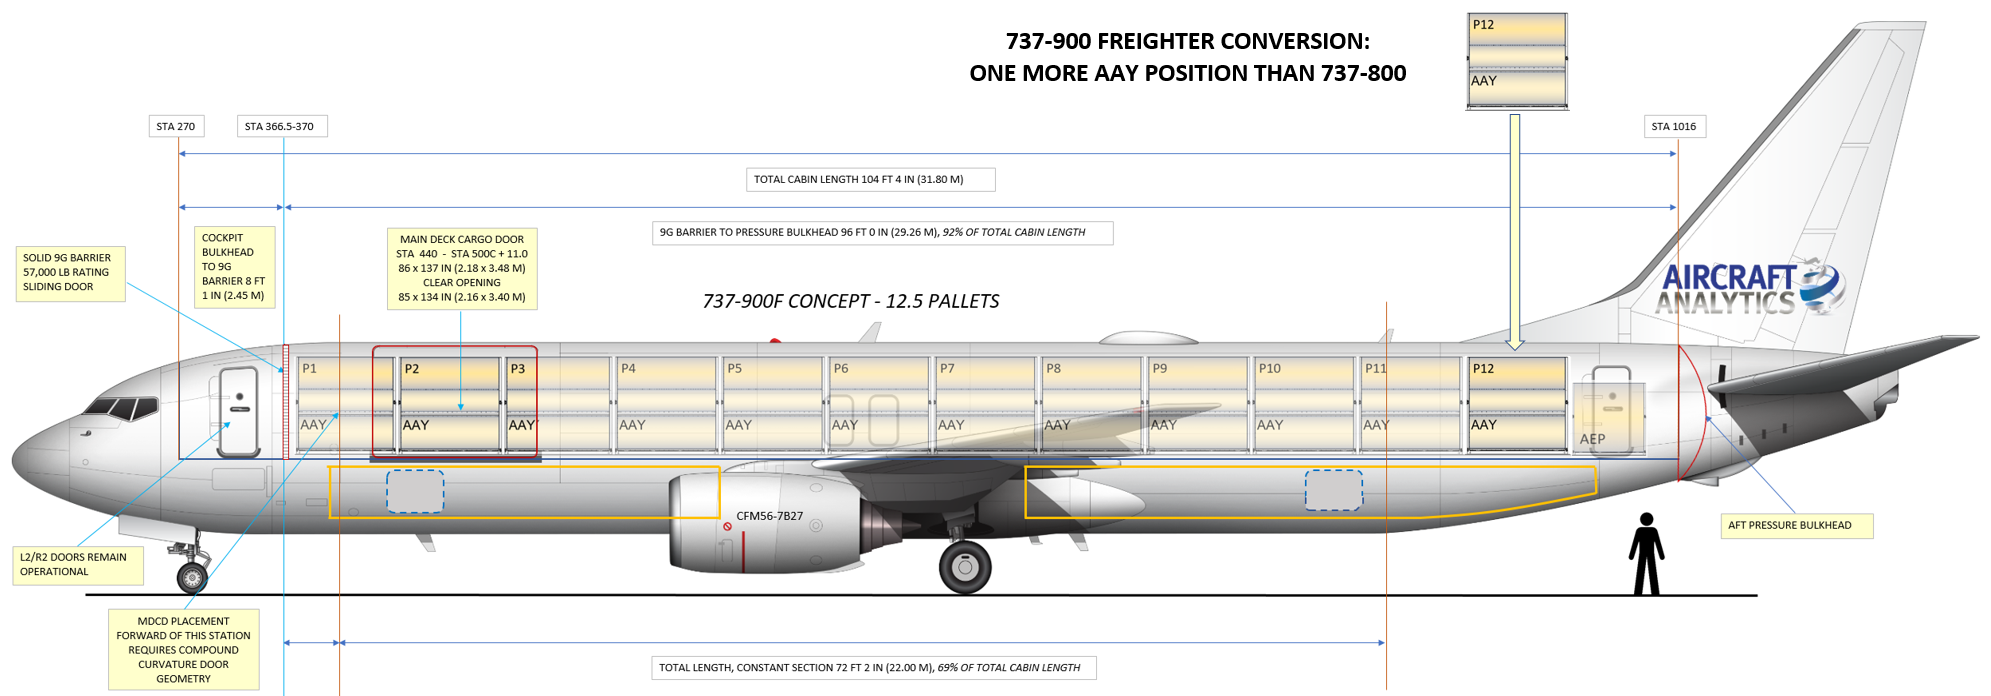 737-900 among several prospective narrow-body P-to-F candidates